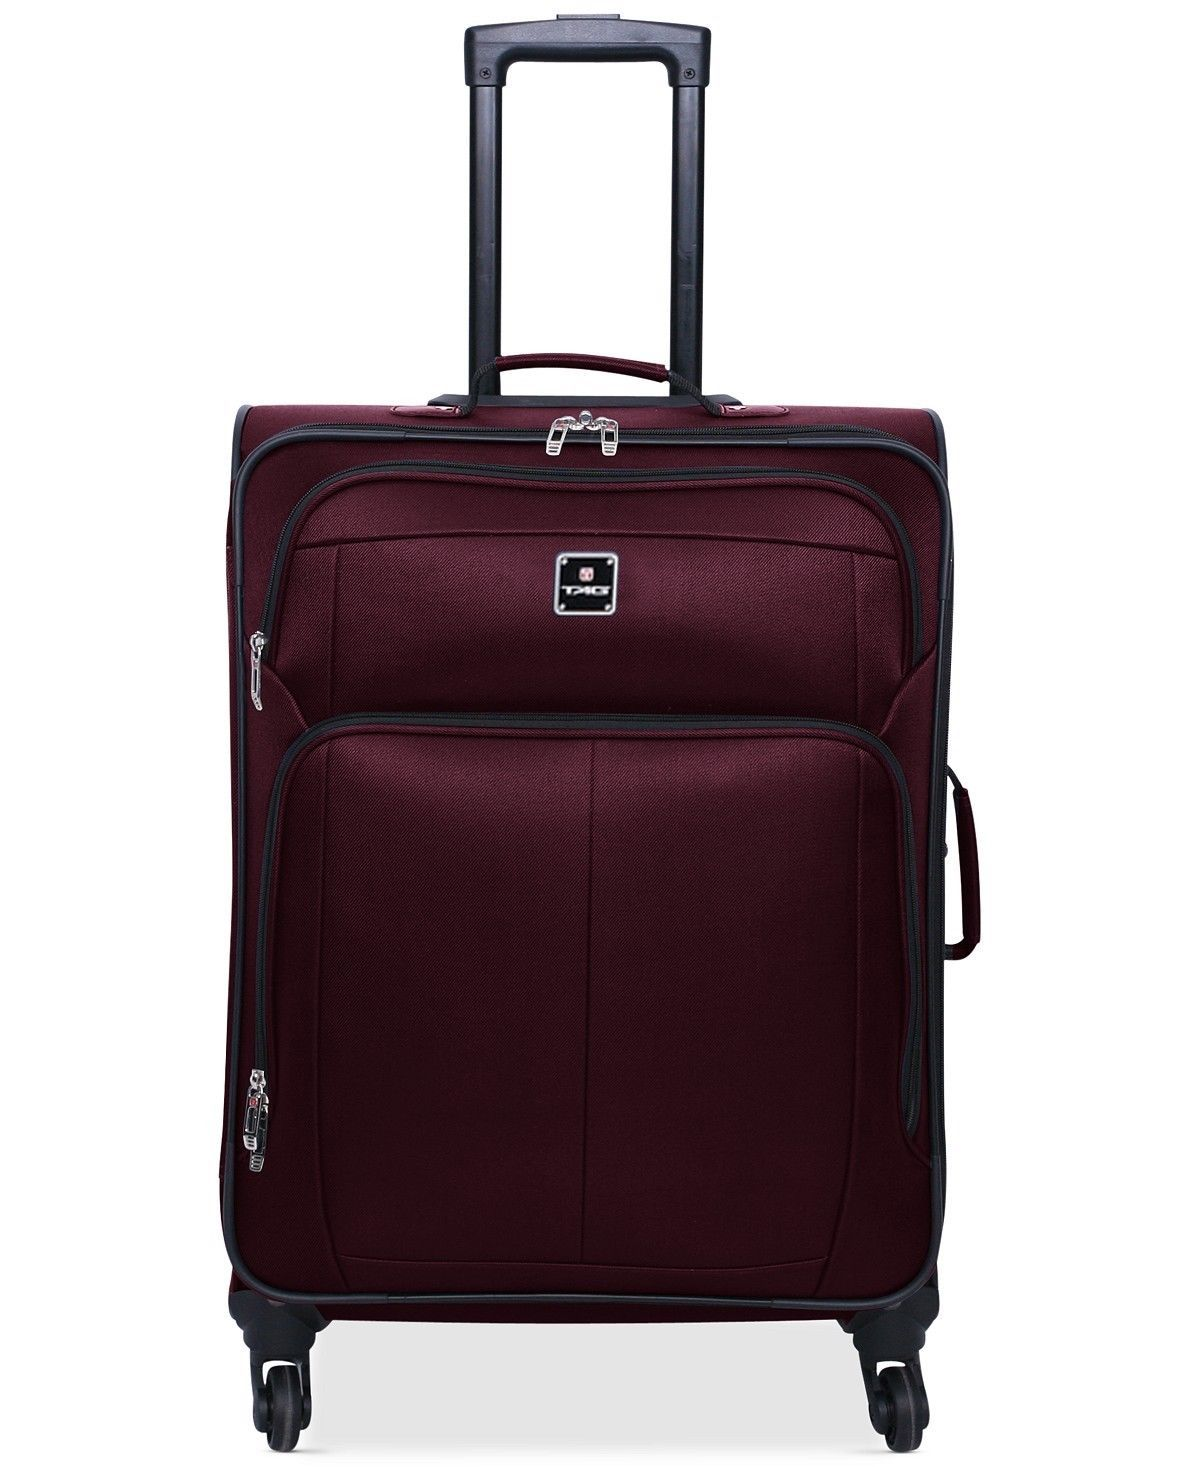 "Primary image for NEW Tag Daytona Burgundy Luggage 20"" Suitcase"